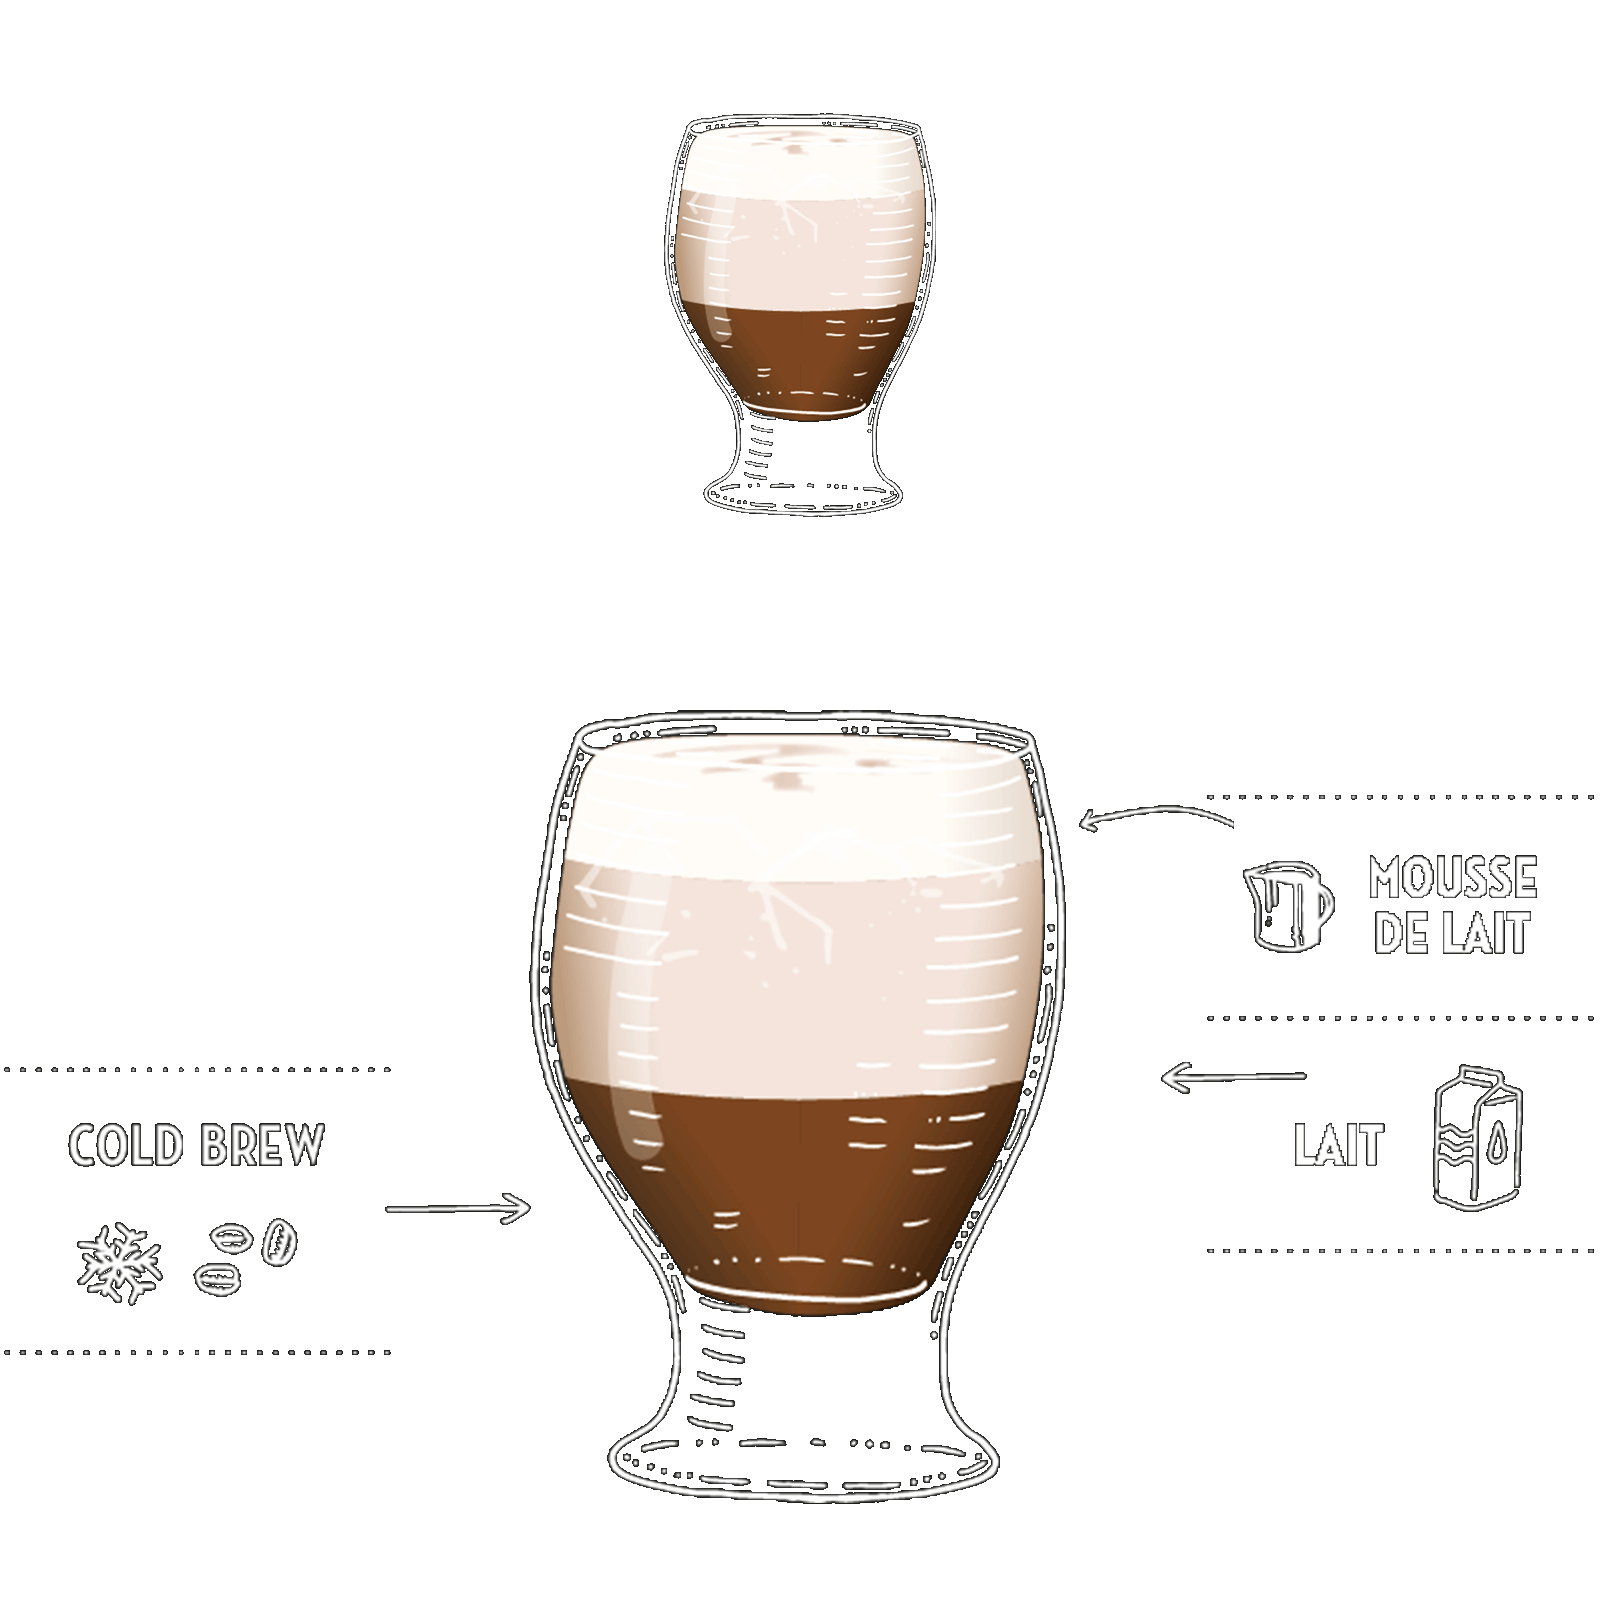 cold-brew-cappuccino.png